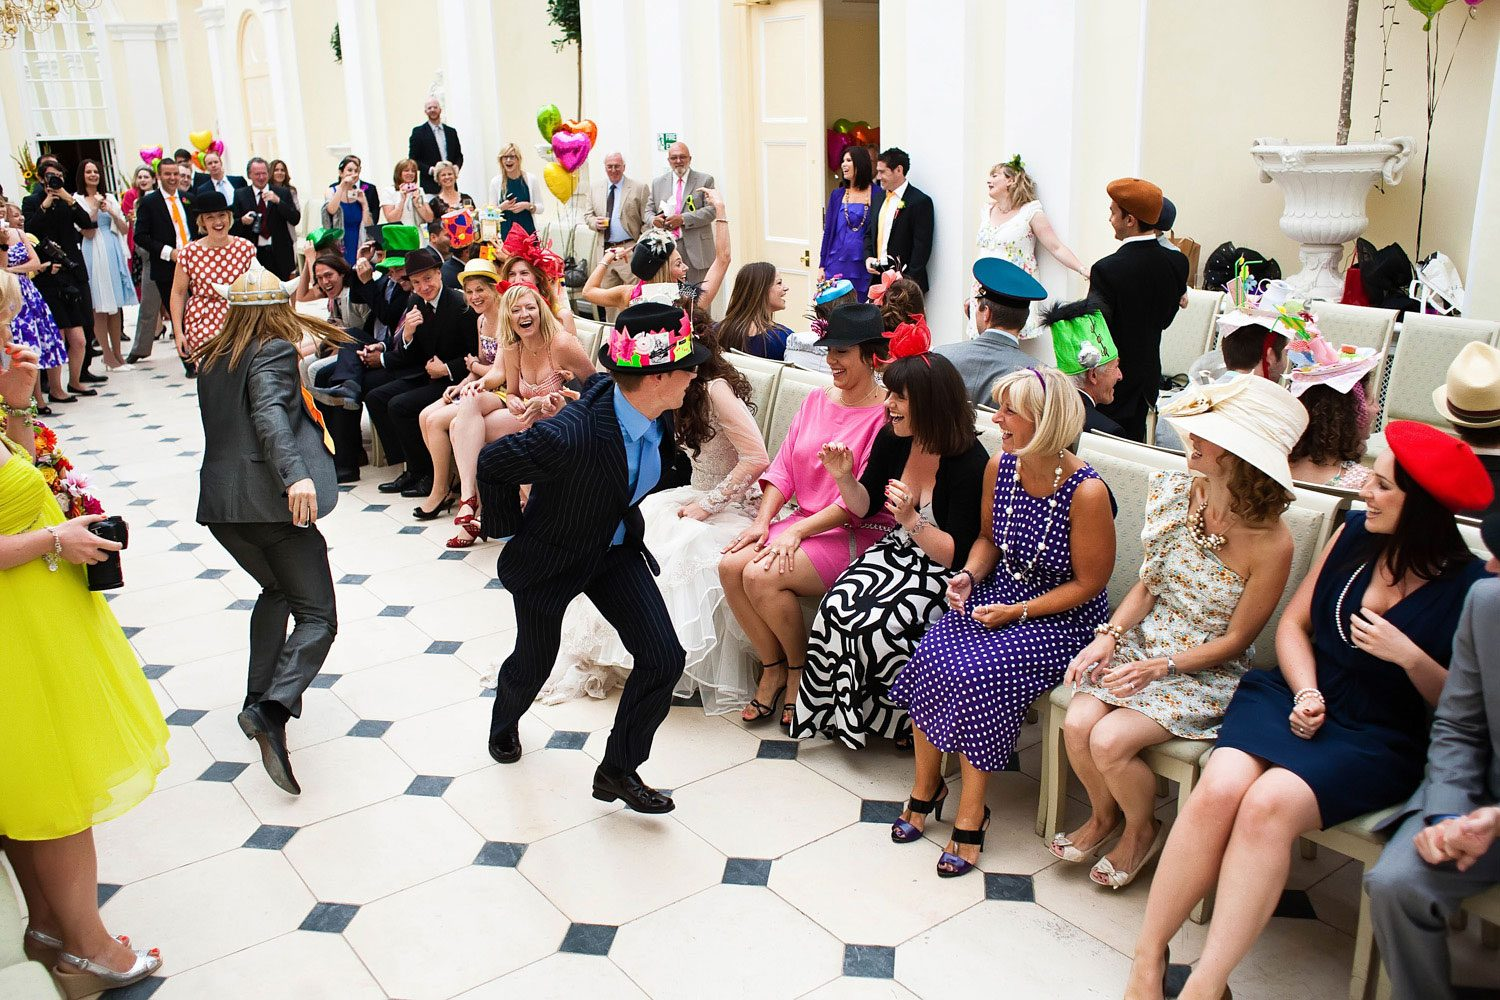 guests play musical chairs at wedding